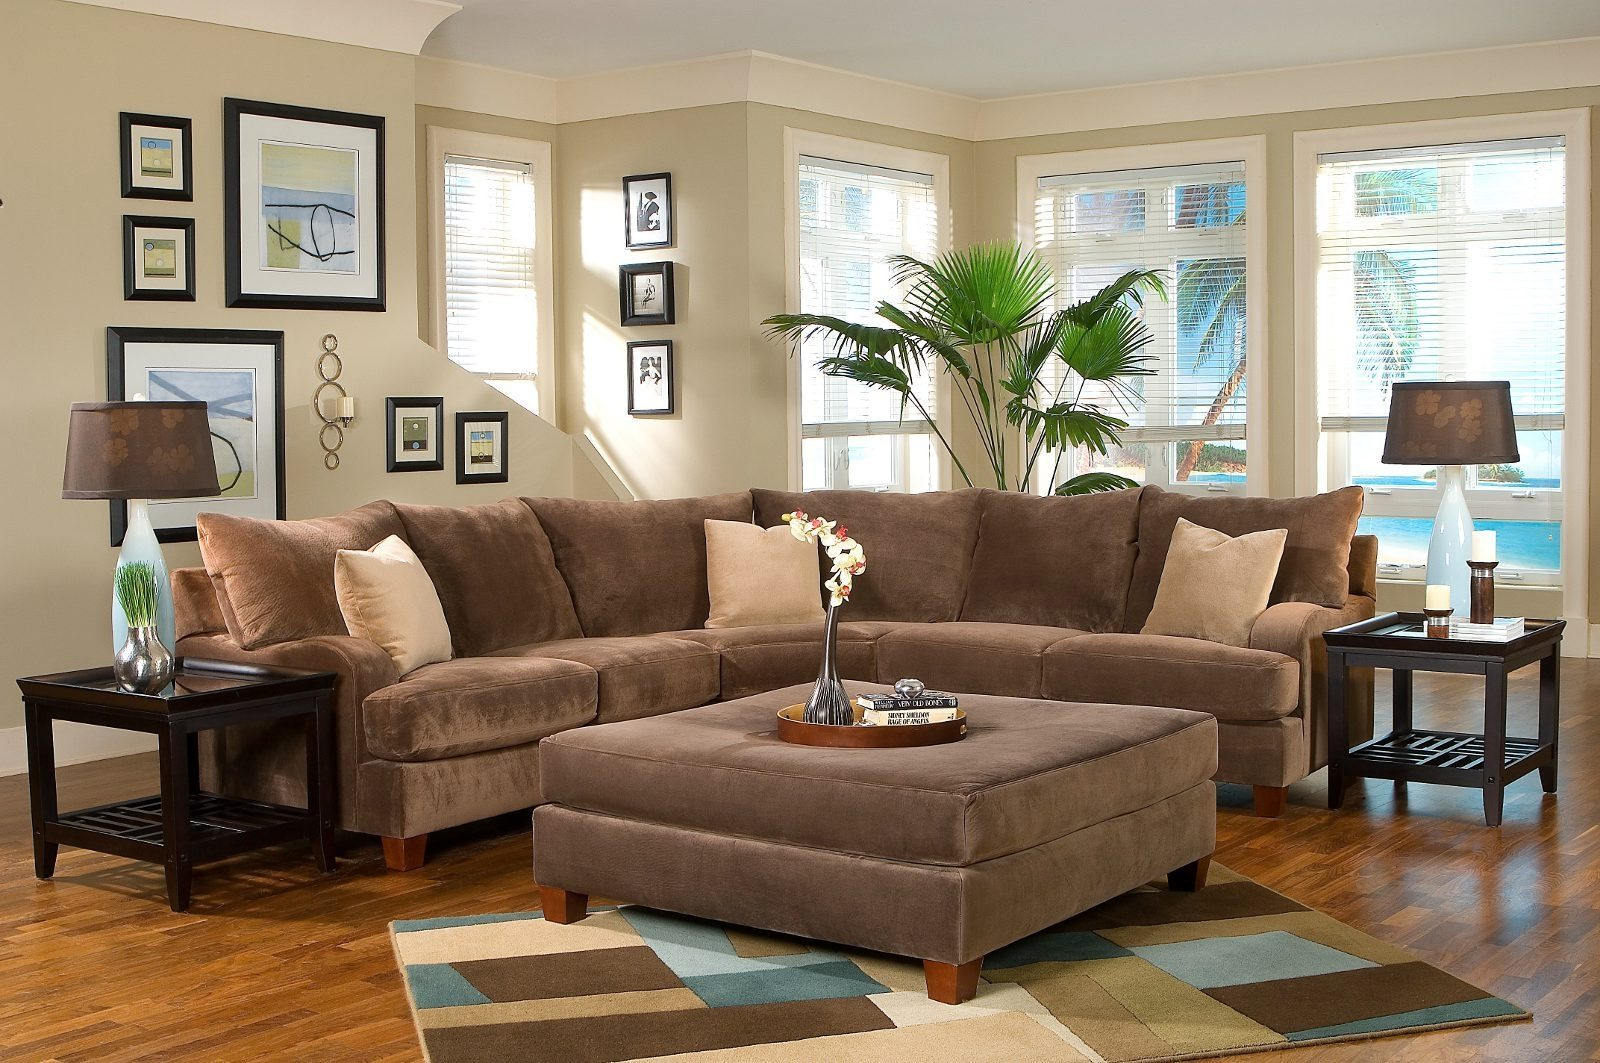 New Deep Seated Sofa Sectional 84 For Contemporary Sofa